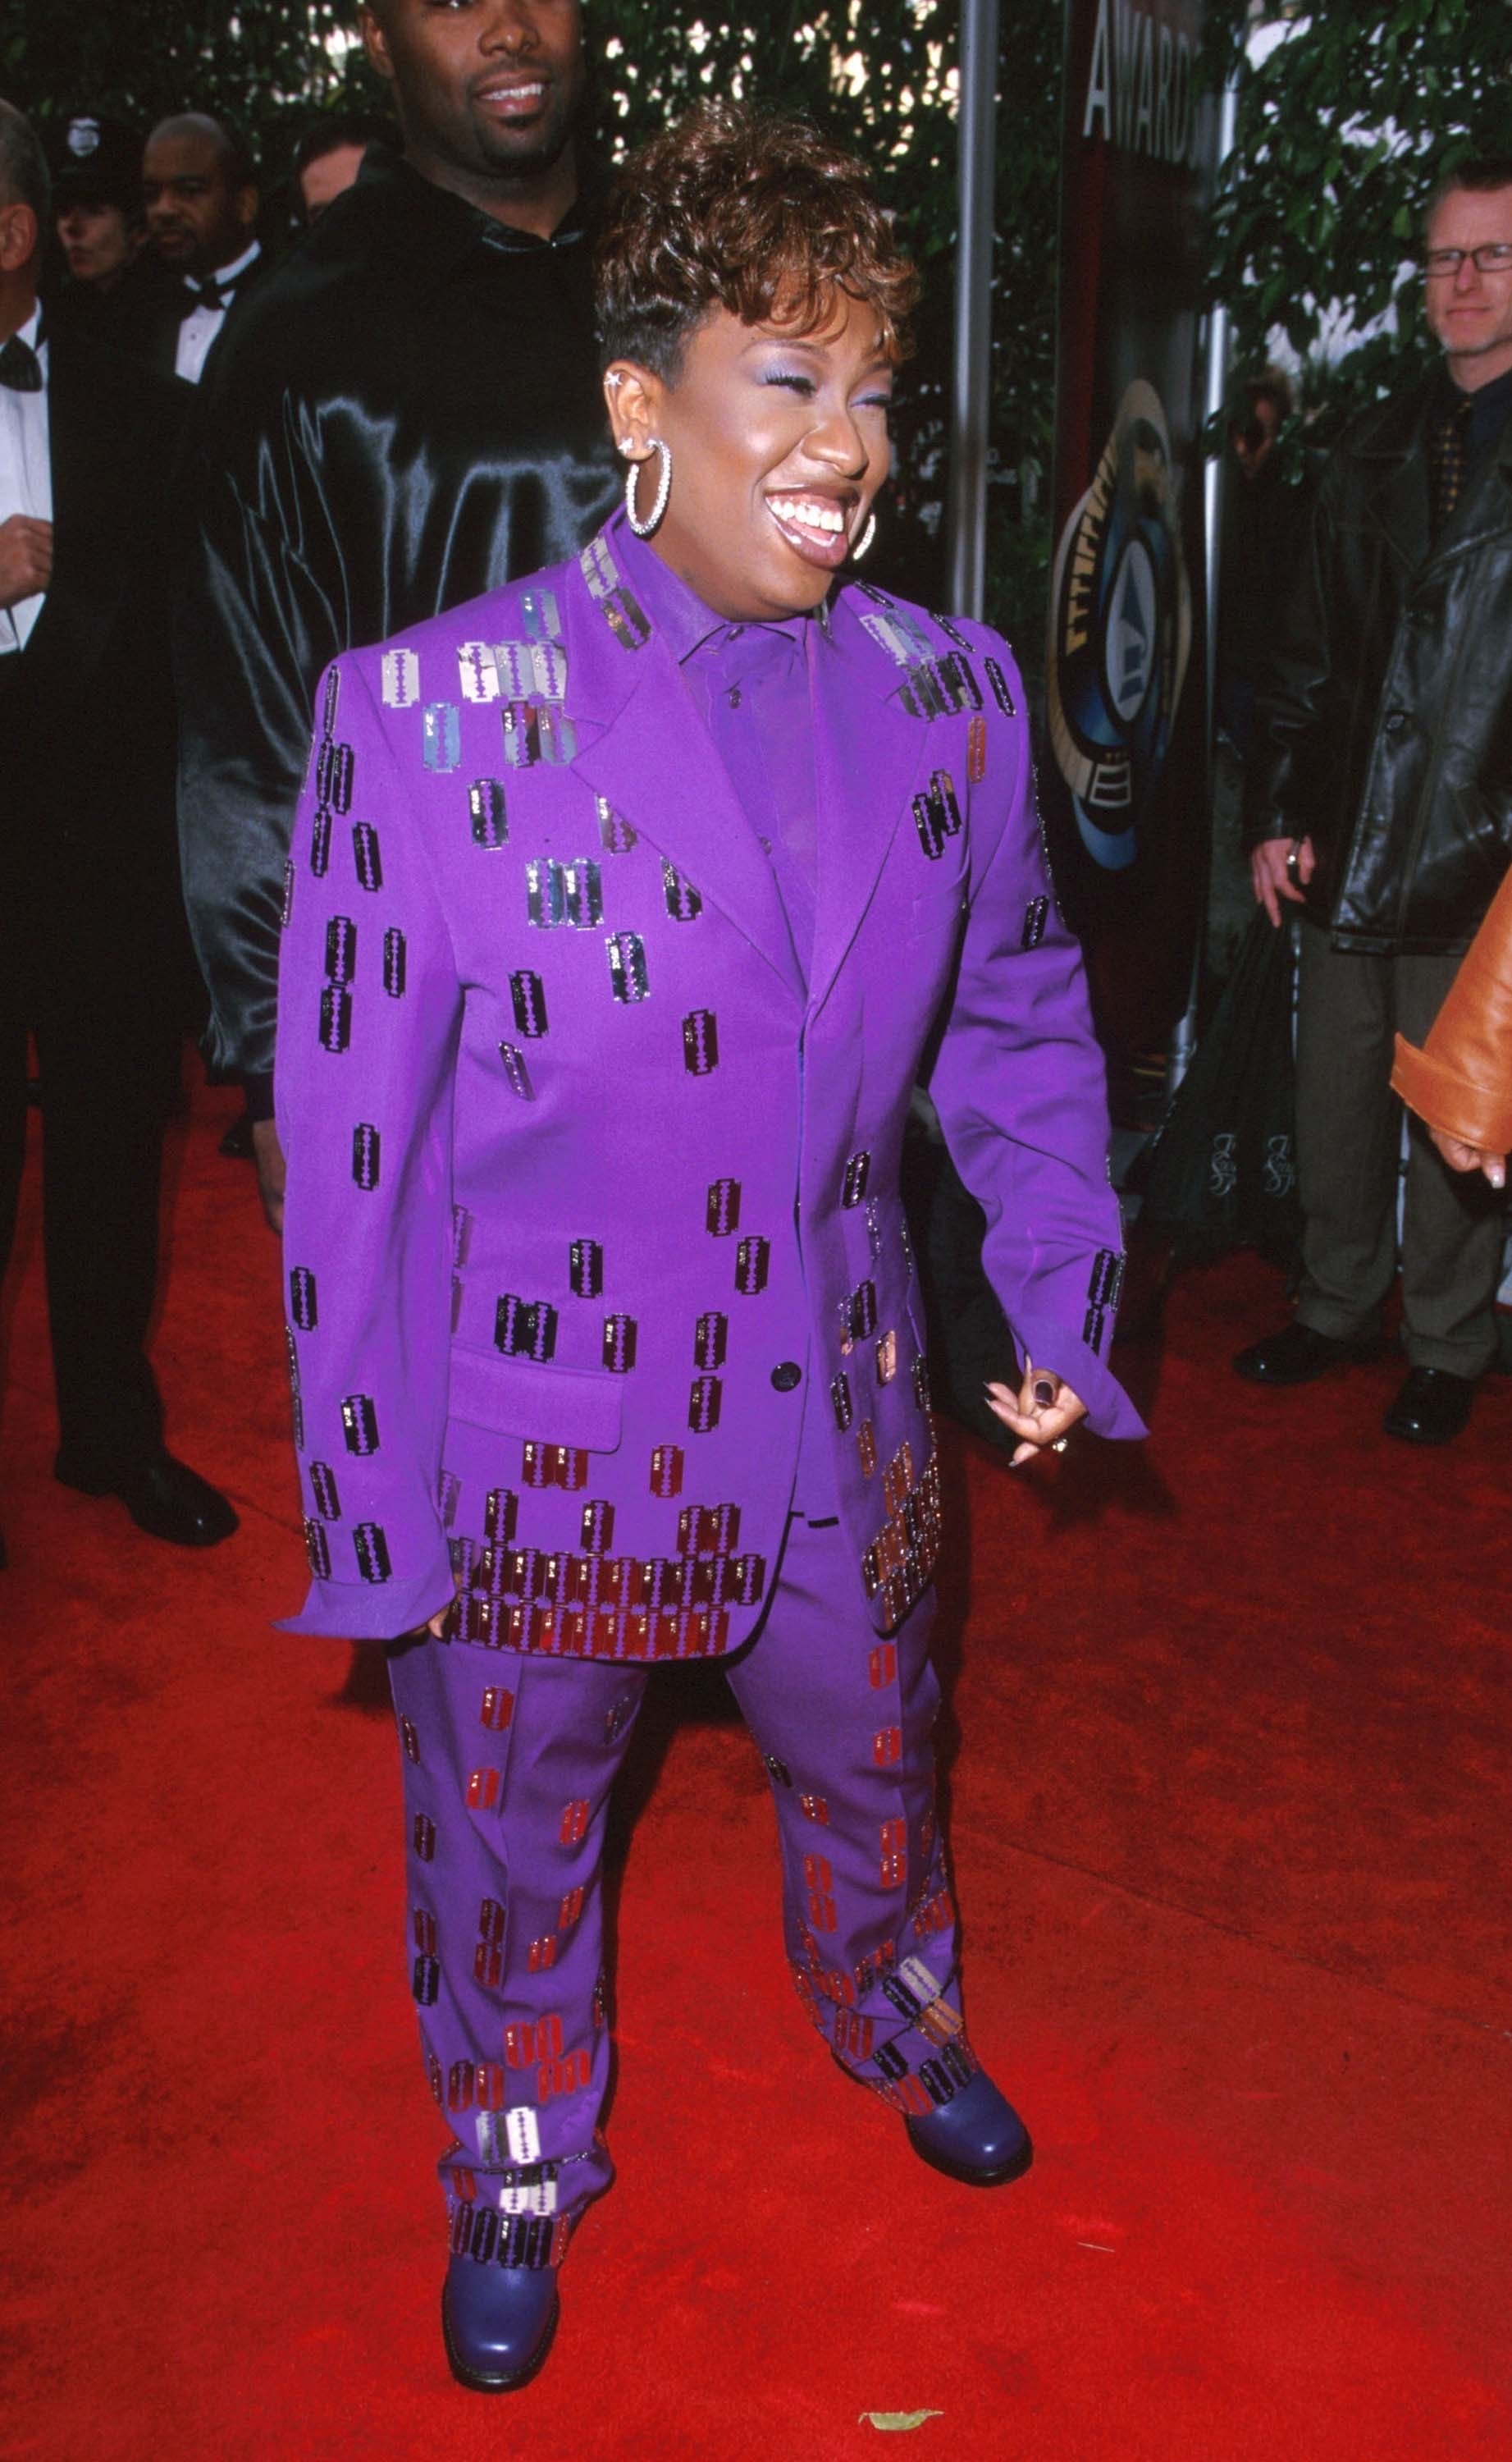 missy elliot in a purple suit with razor blades